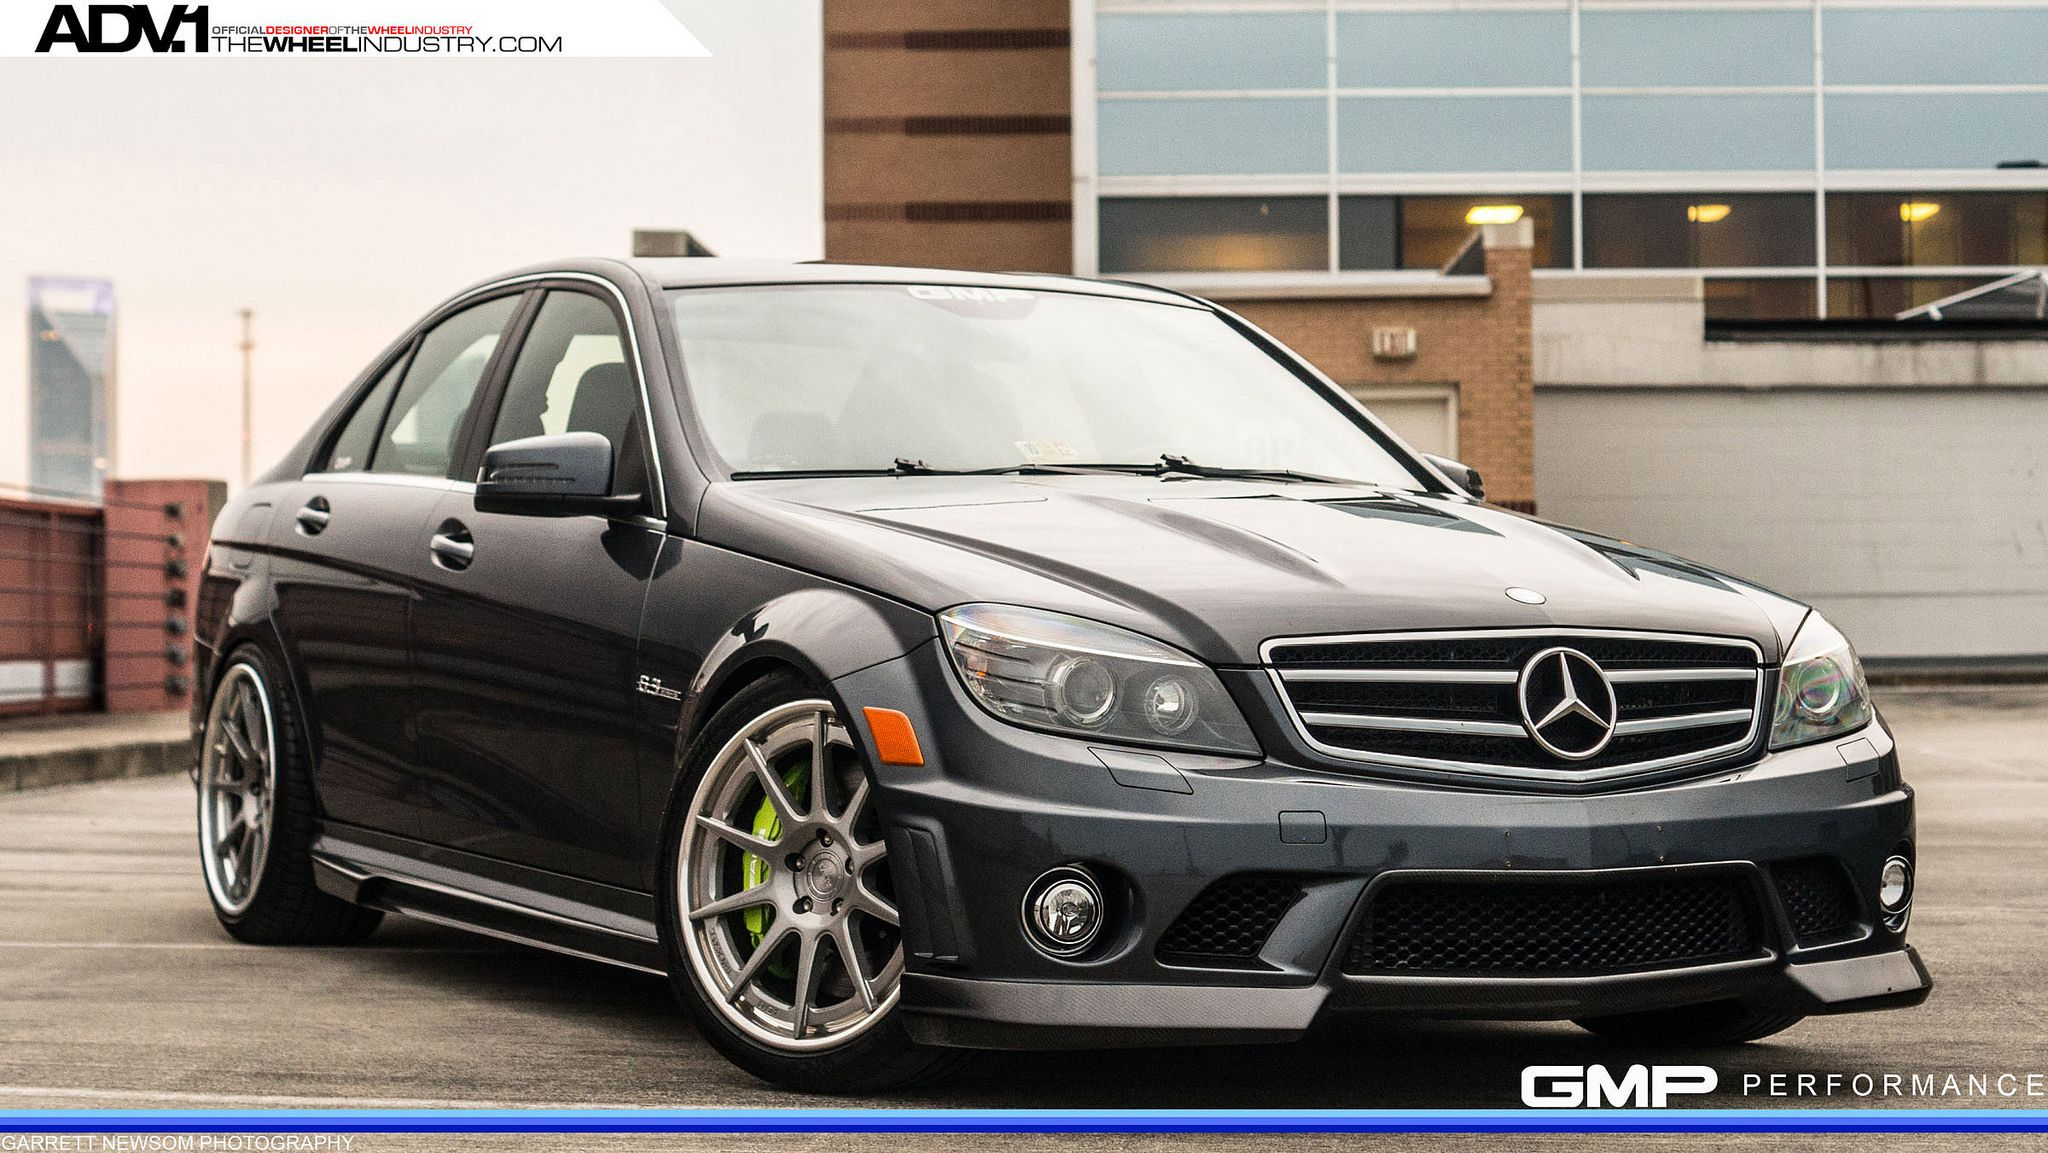 https://flic.kr/p/ssnm6k | Mercedes C63 AMG ADV10 Track Spec | ADV.1 Wheels is a global leader of custom forged wheels for high performance and luxury cars. We design, manufacture and market concave wheels for the automotive industry.